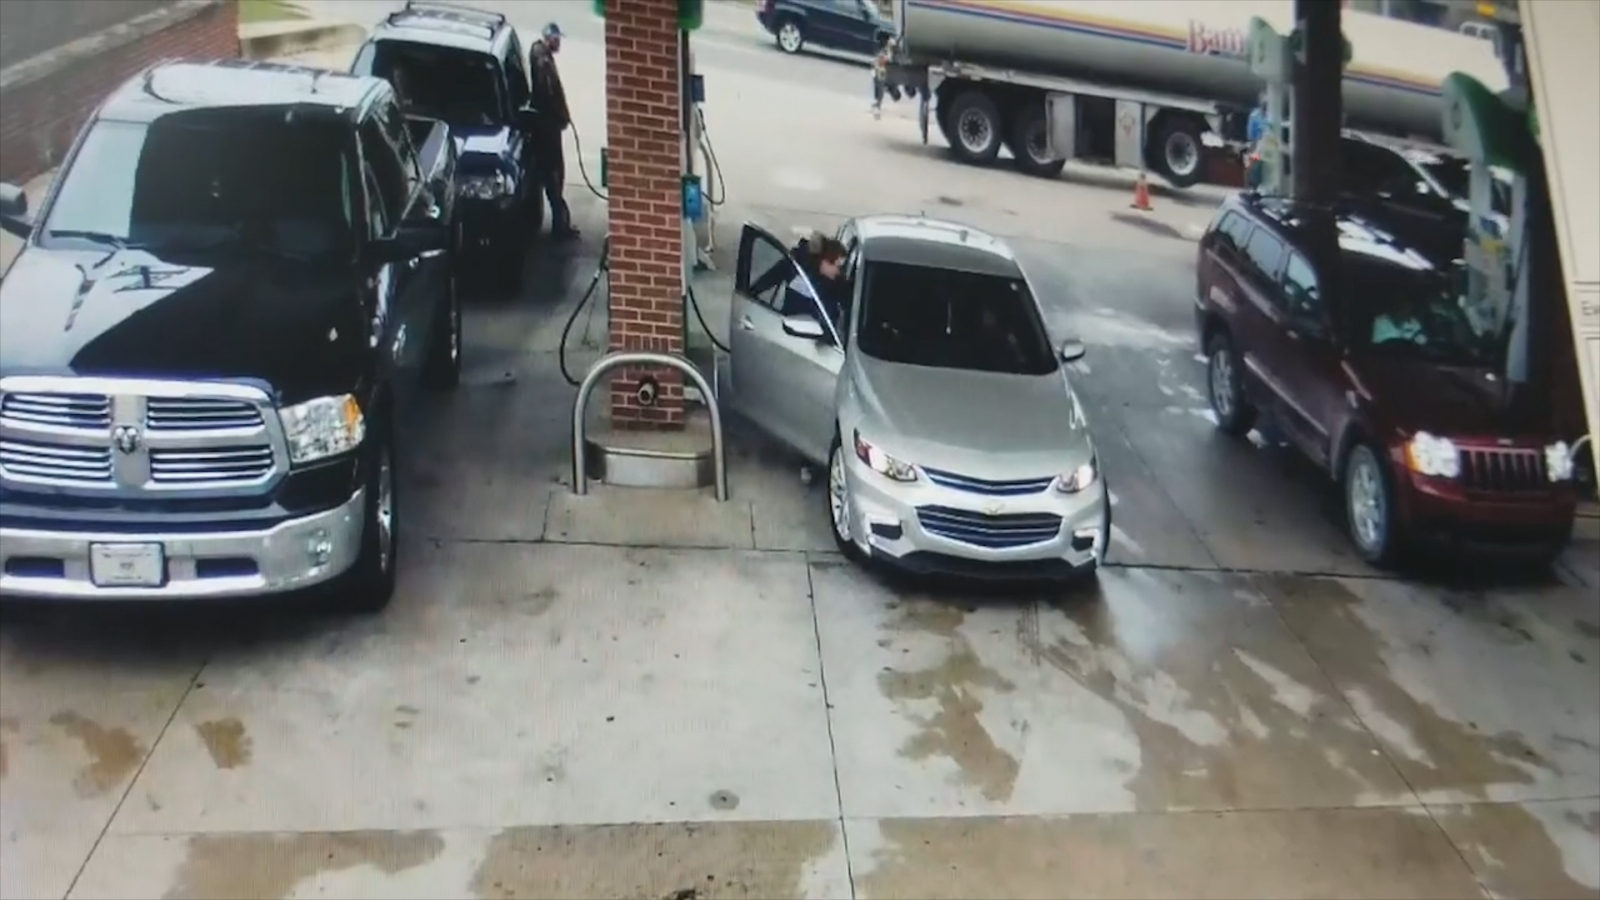 CCTV captures dramatic moment woman fights off carjacker at gas station